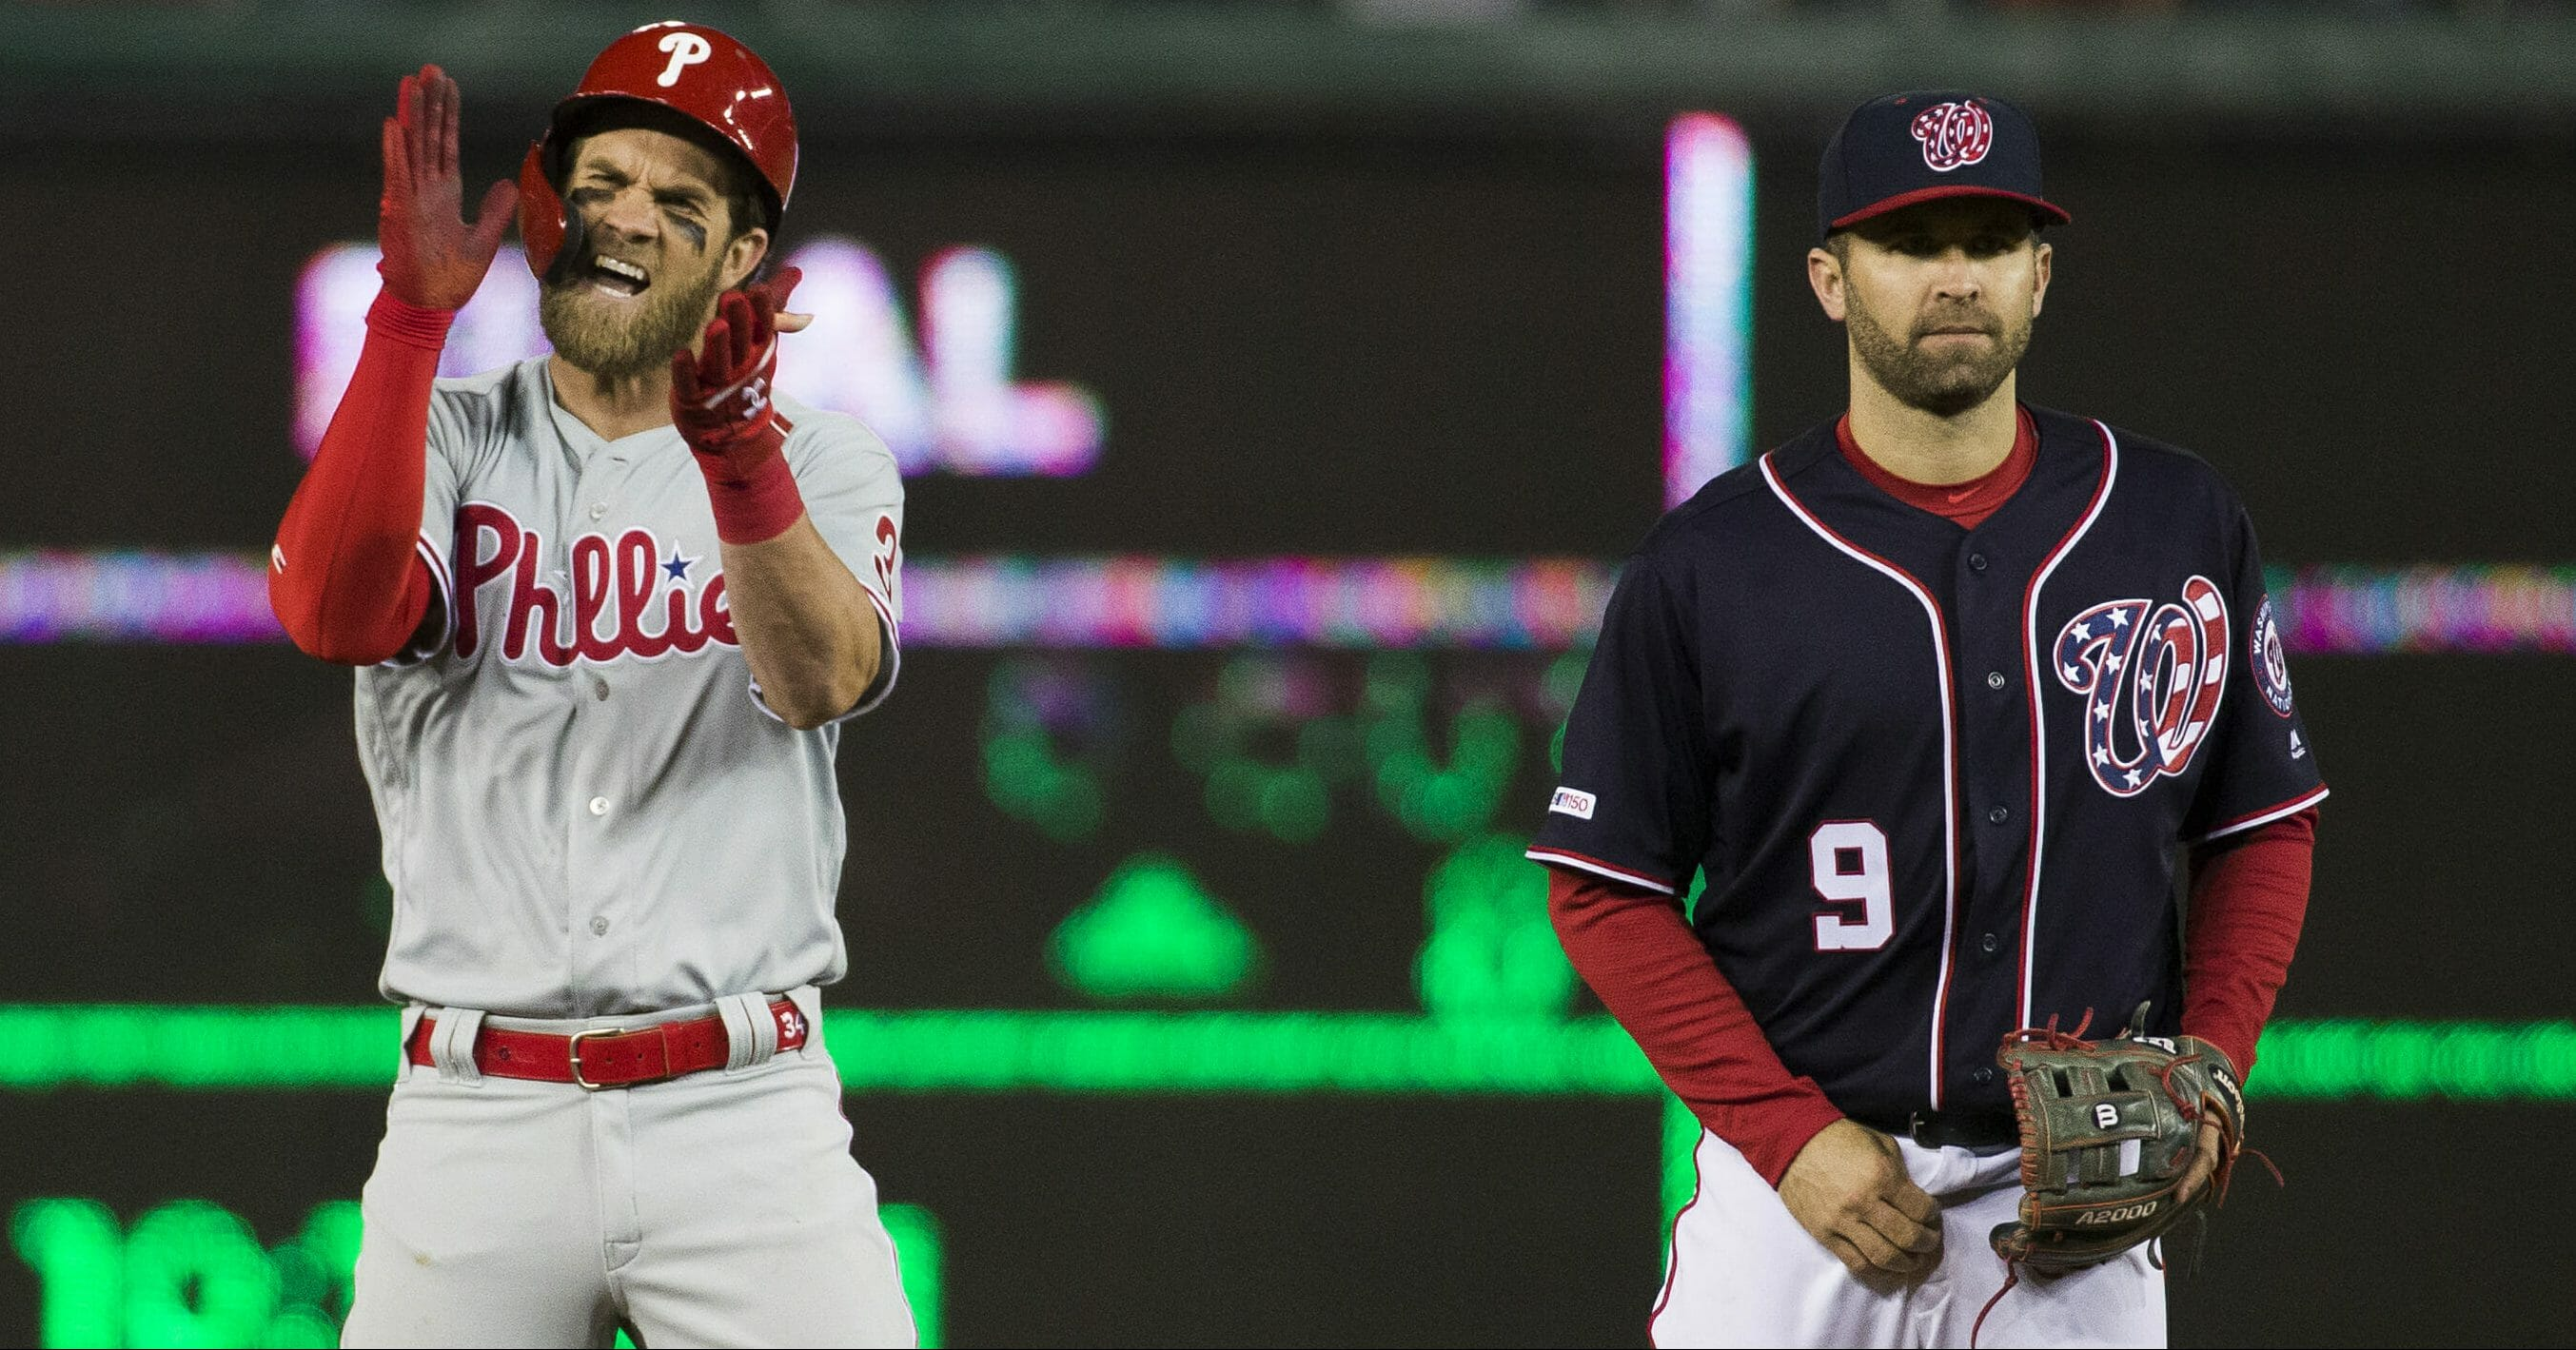 The Philadelphia Phillies' Bryce Harper, left, celebrates his RBI hit while on second base next to Washington Nationals second baseman Brian Dozier during the sixth inning April 2, 2019, at Nationals Park.